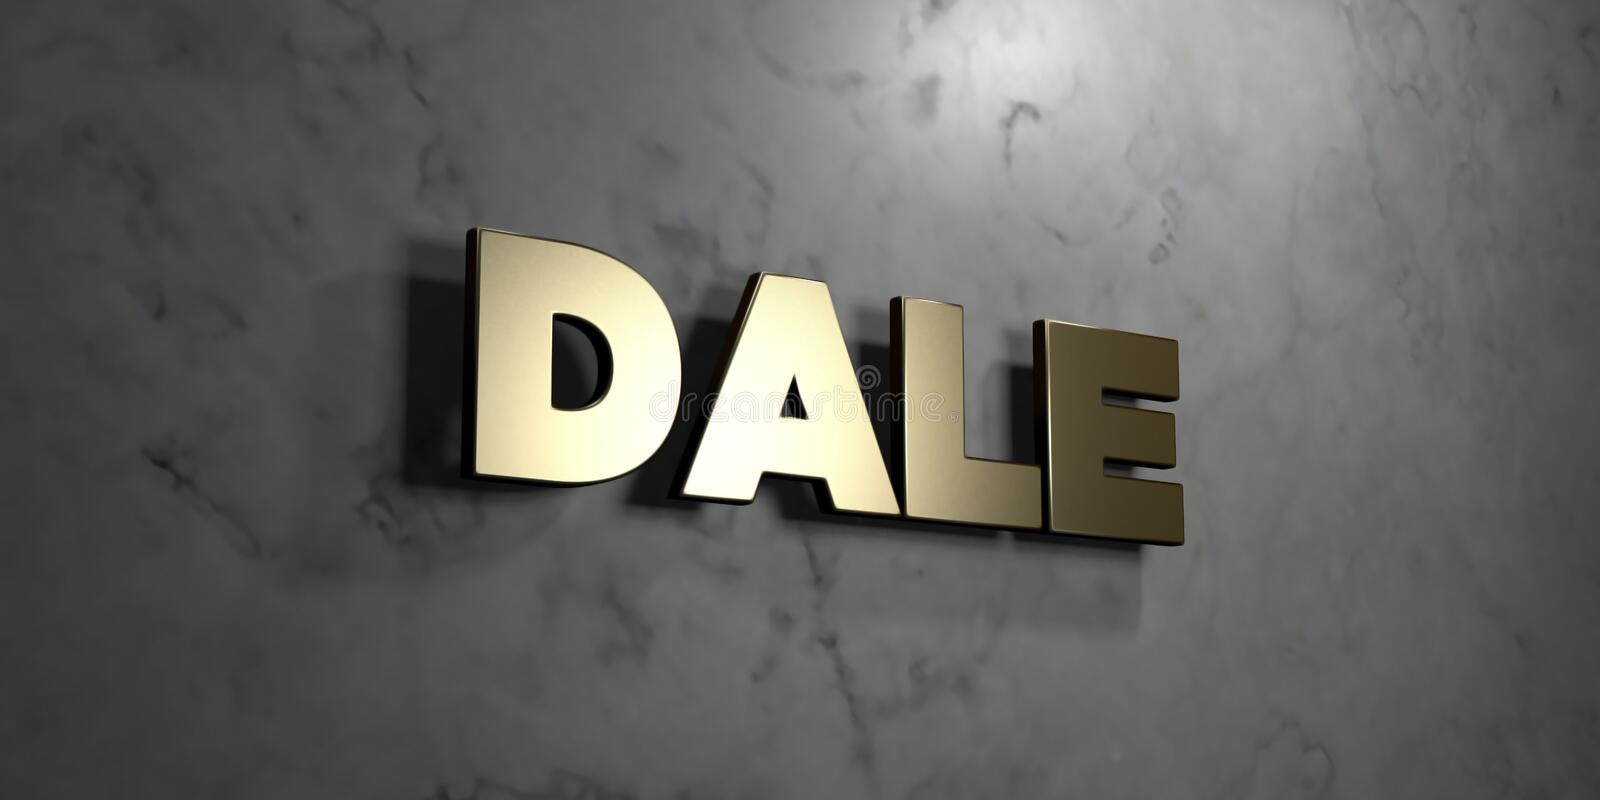 Dale - Gold sign mounted on glossy marble wall - 3D rendered royalty free stock illustration. This image can be used for an online website banner ad or a print royalty free illustration